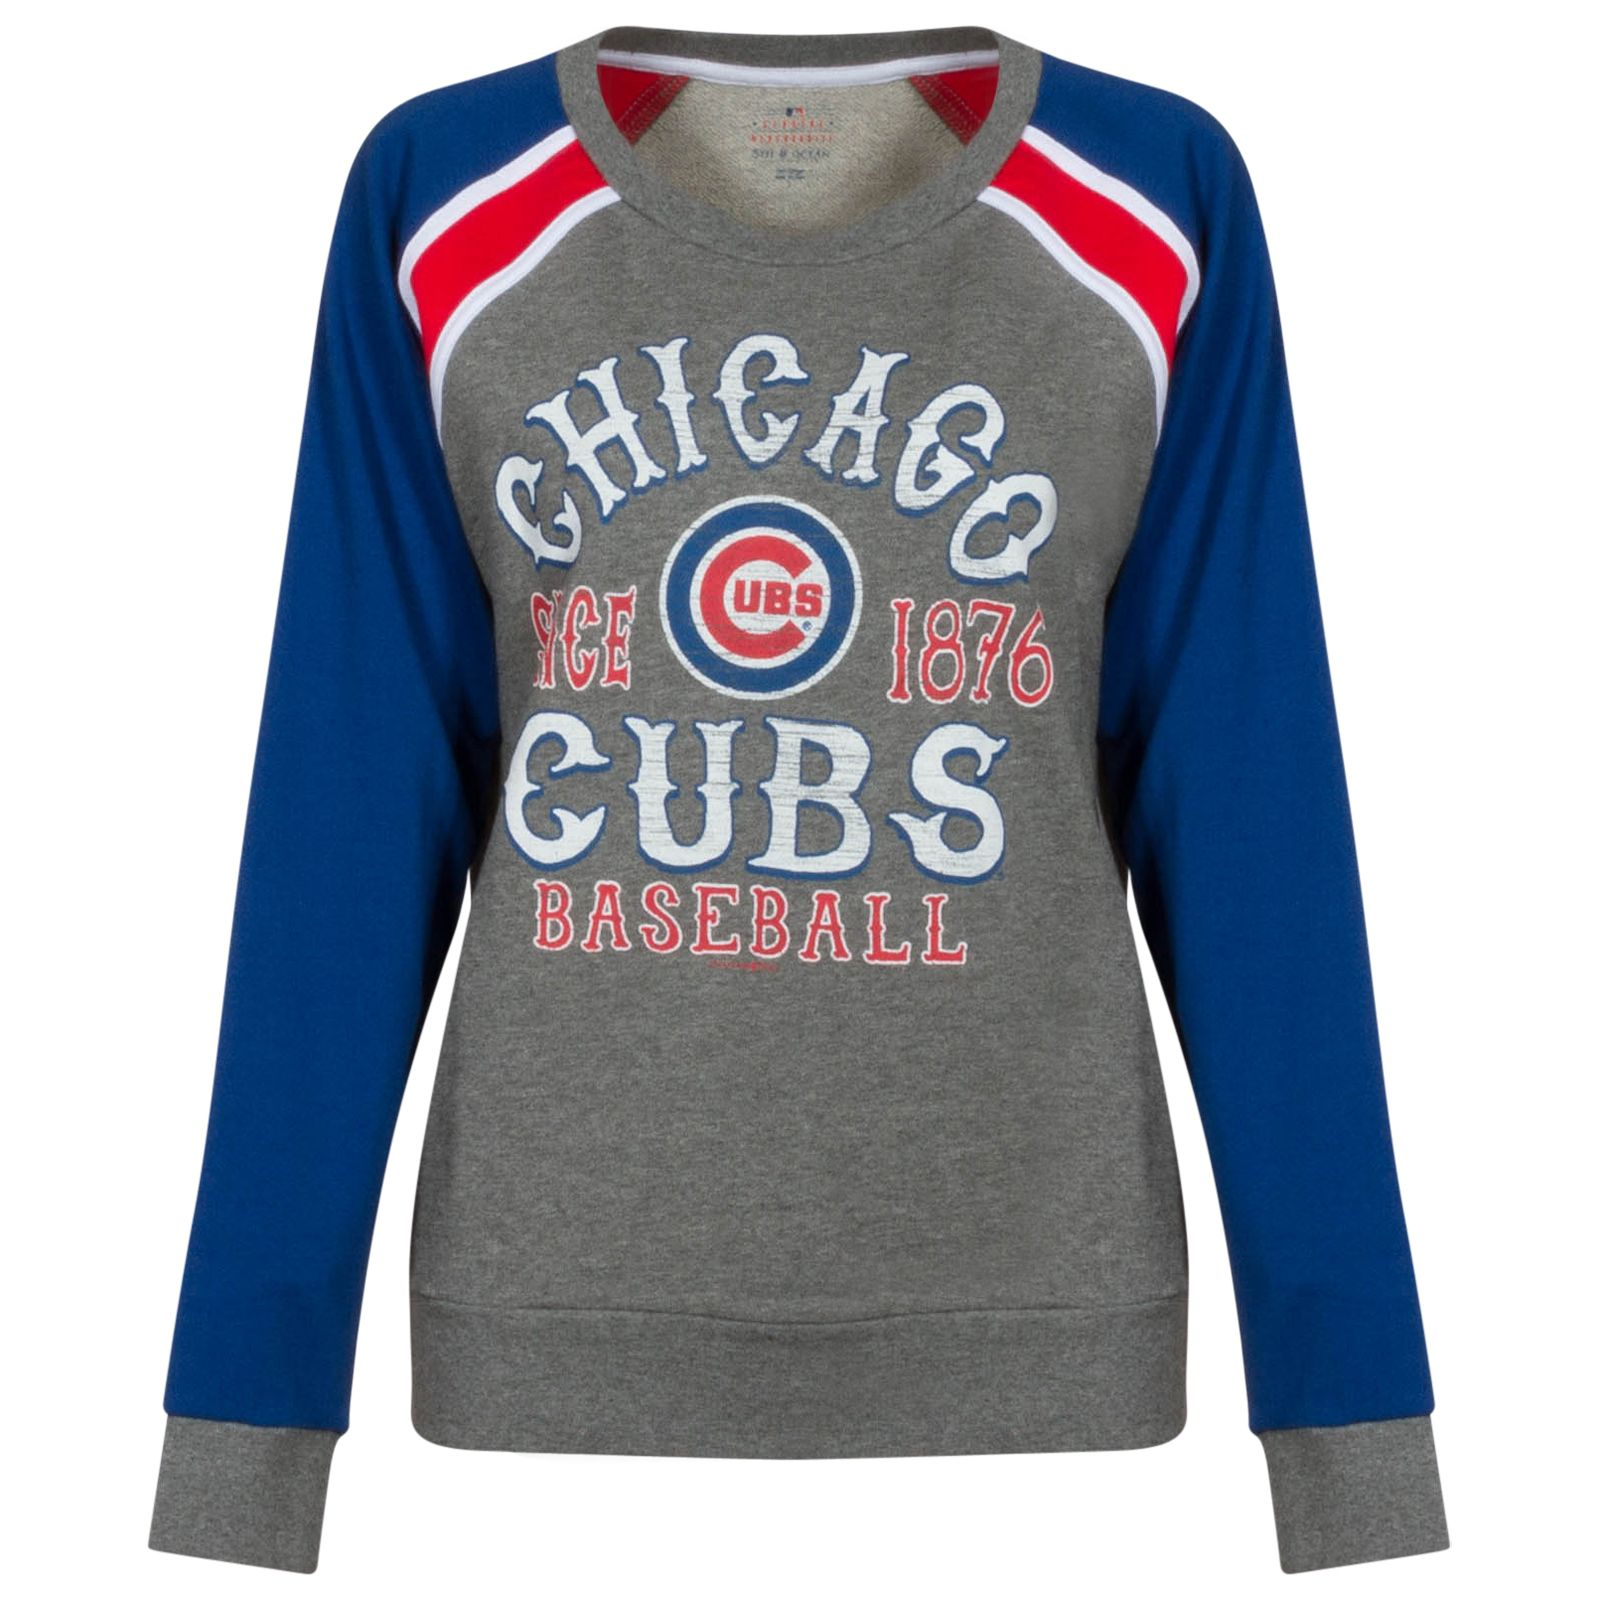 hot sale online 214a0 4a850 Chicago Cubs Women's Grey, Red, White, and Royal